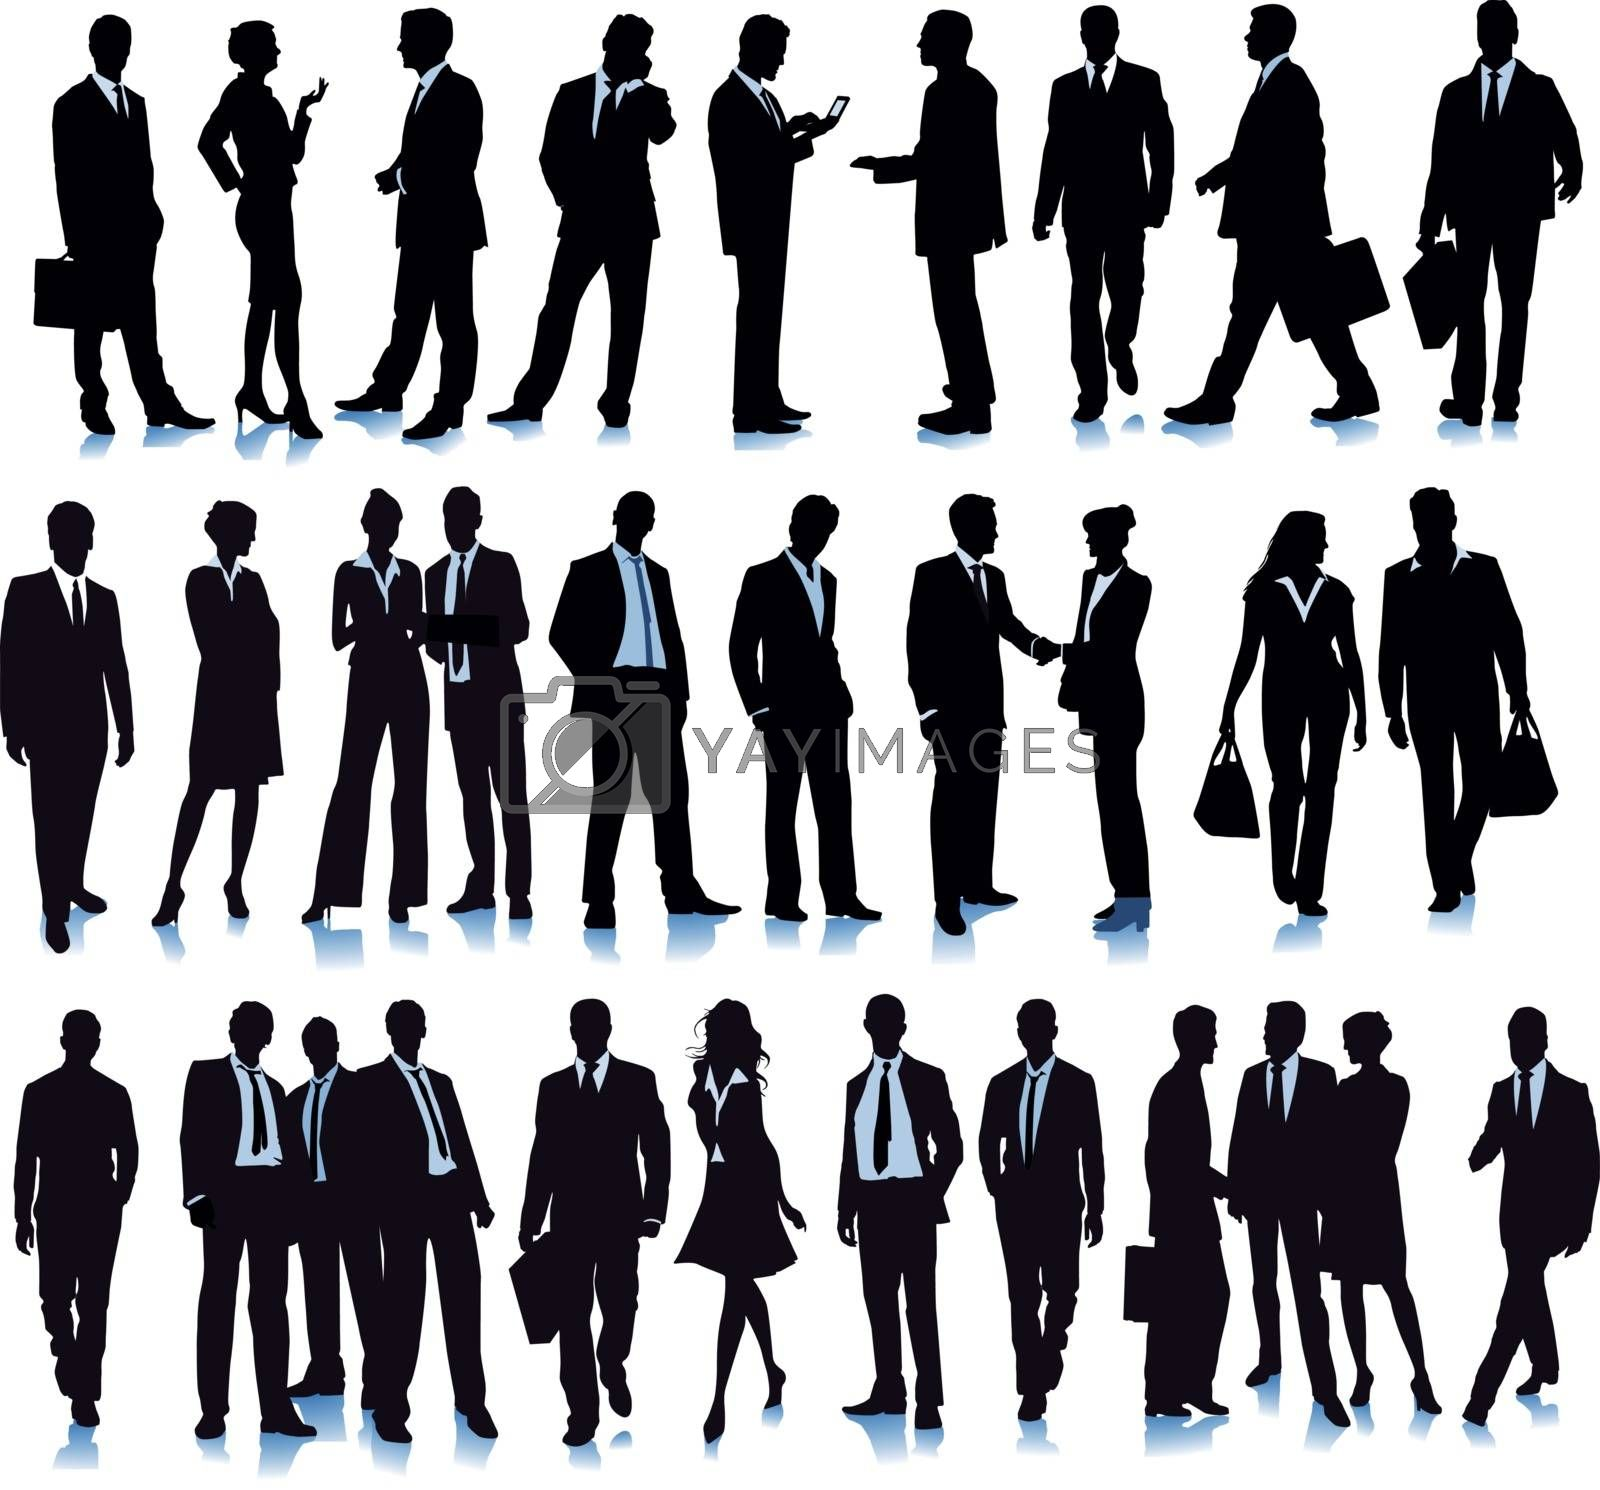 Group with diverse business people, illustration